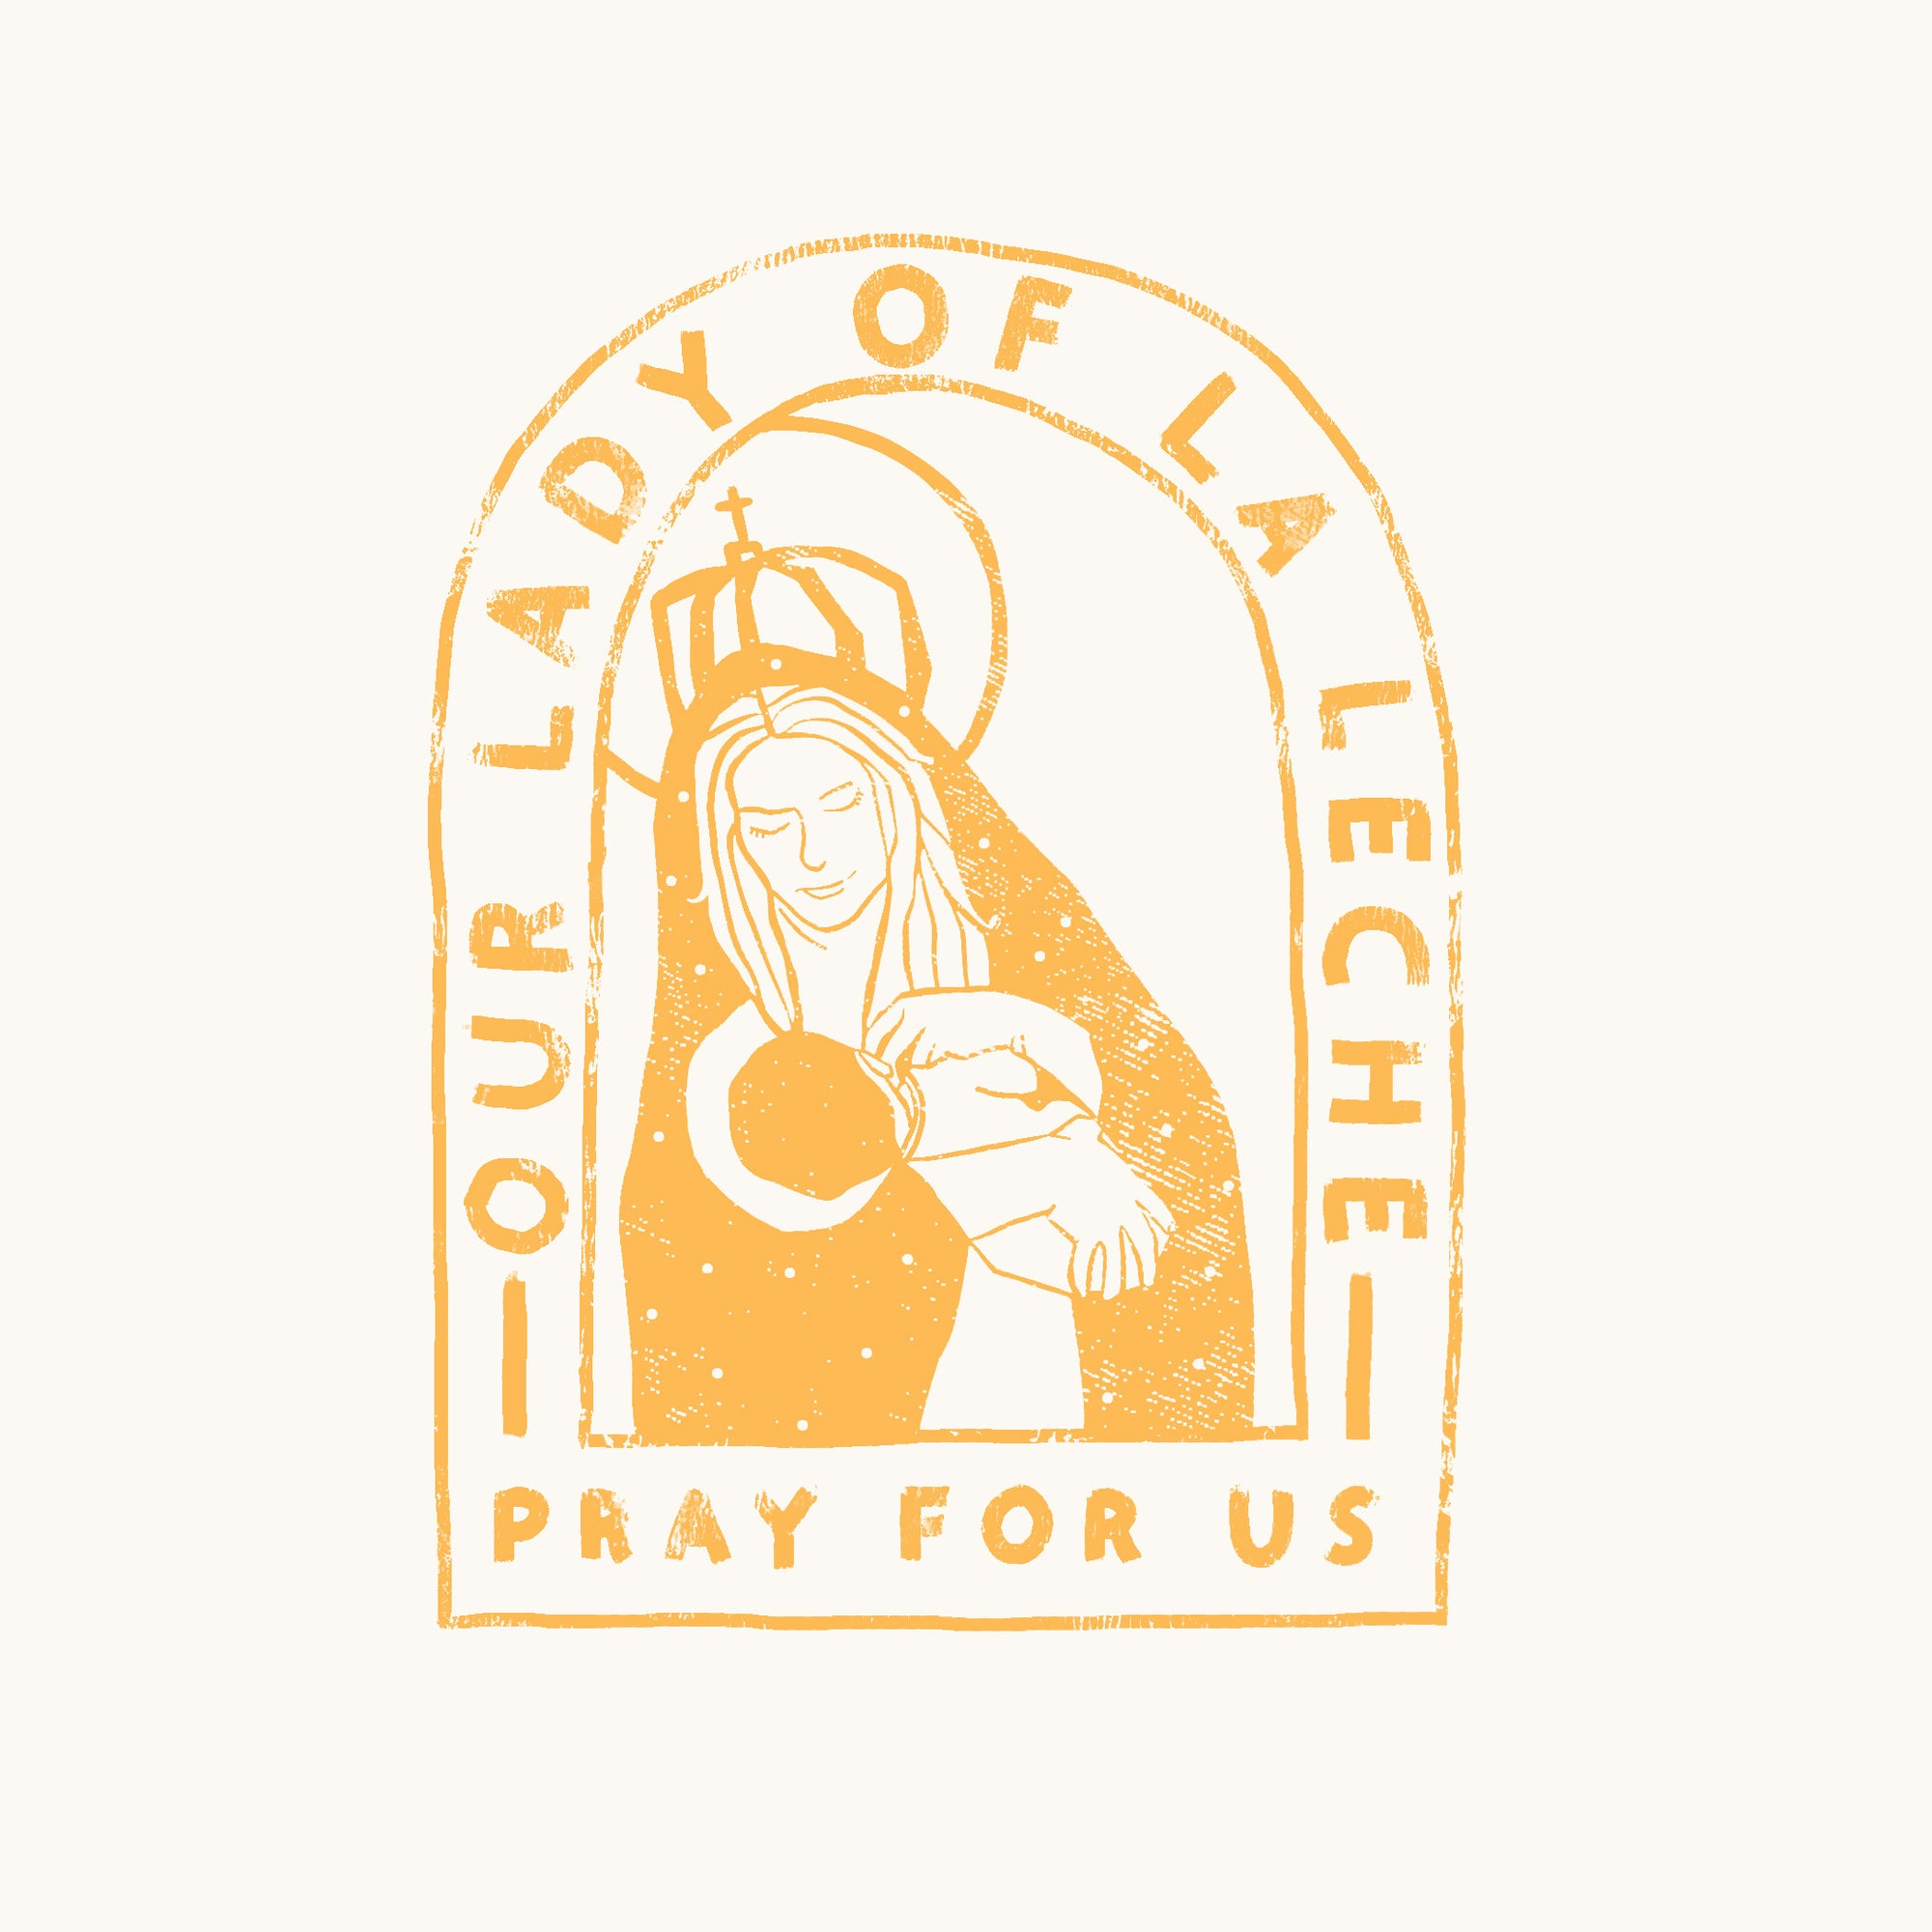 Our Lady of La Leche - World Breastfeeding Week